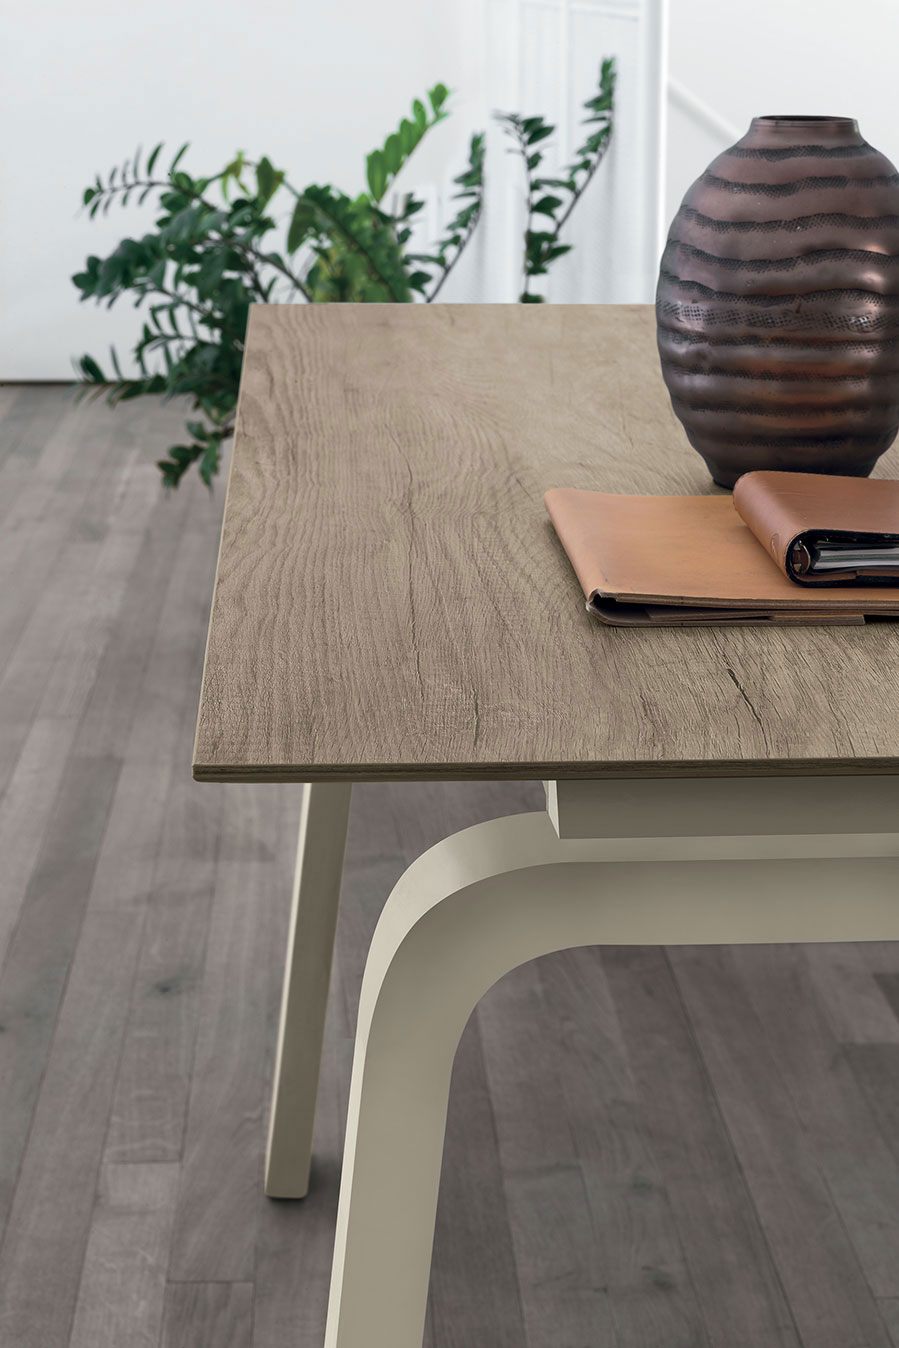 table, modern table, wooden table, white legs, trapezi, accessories, dining table, kitchen table, andreotti, andreotti furniture, epipla, furniture, limassol, cyprus